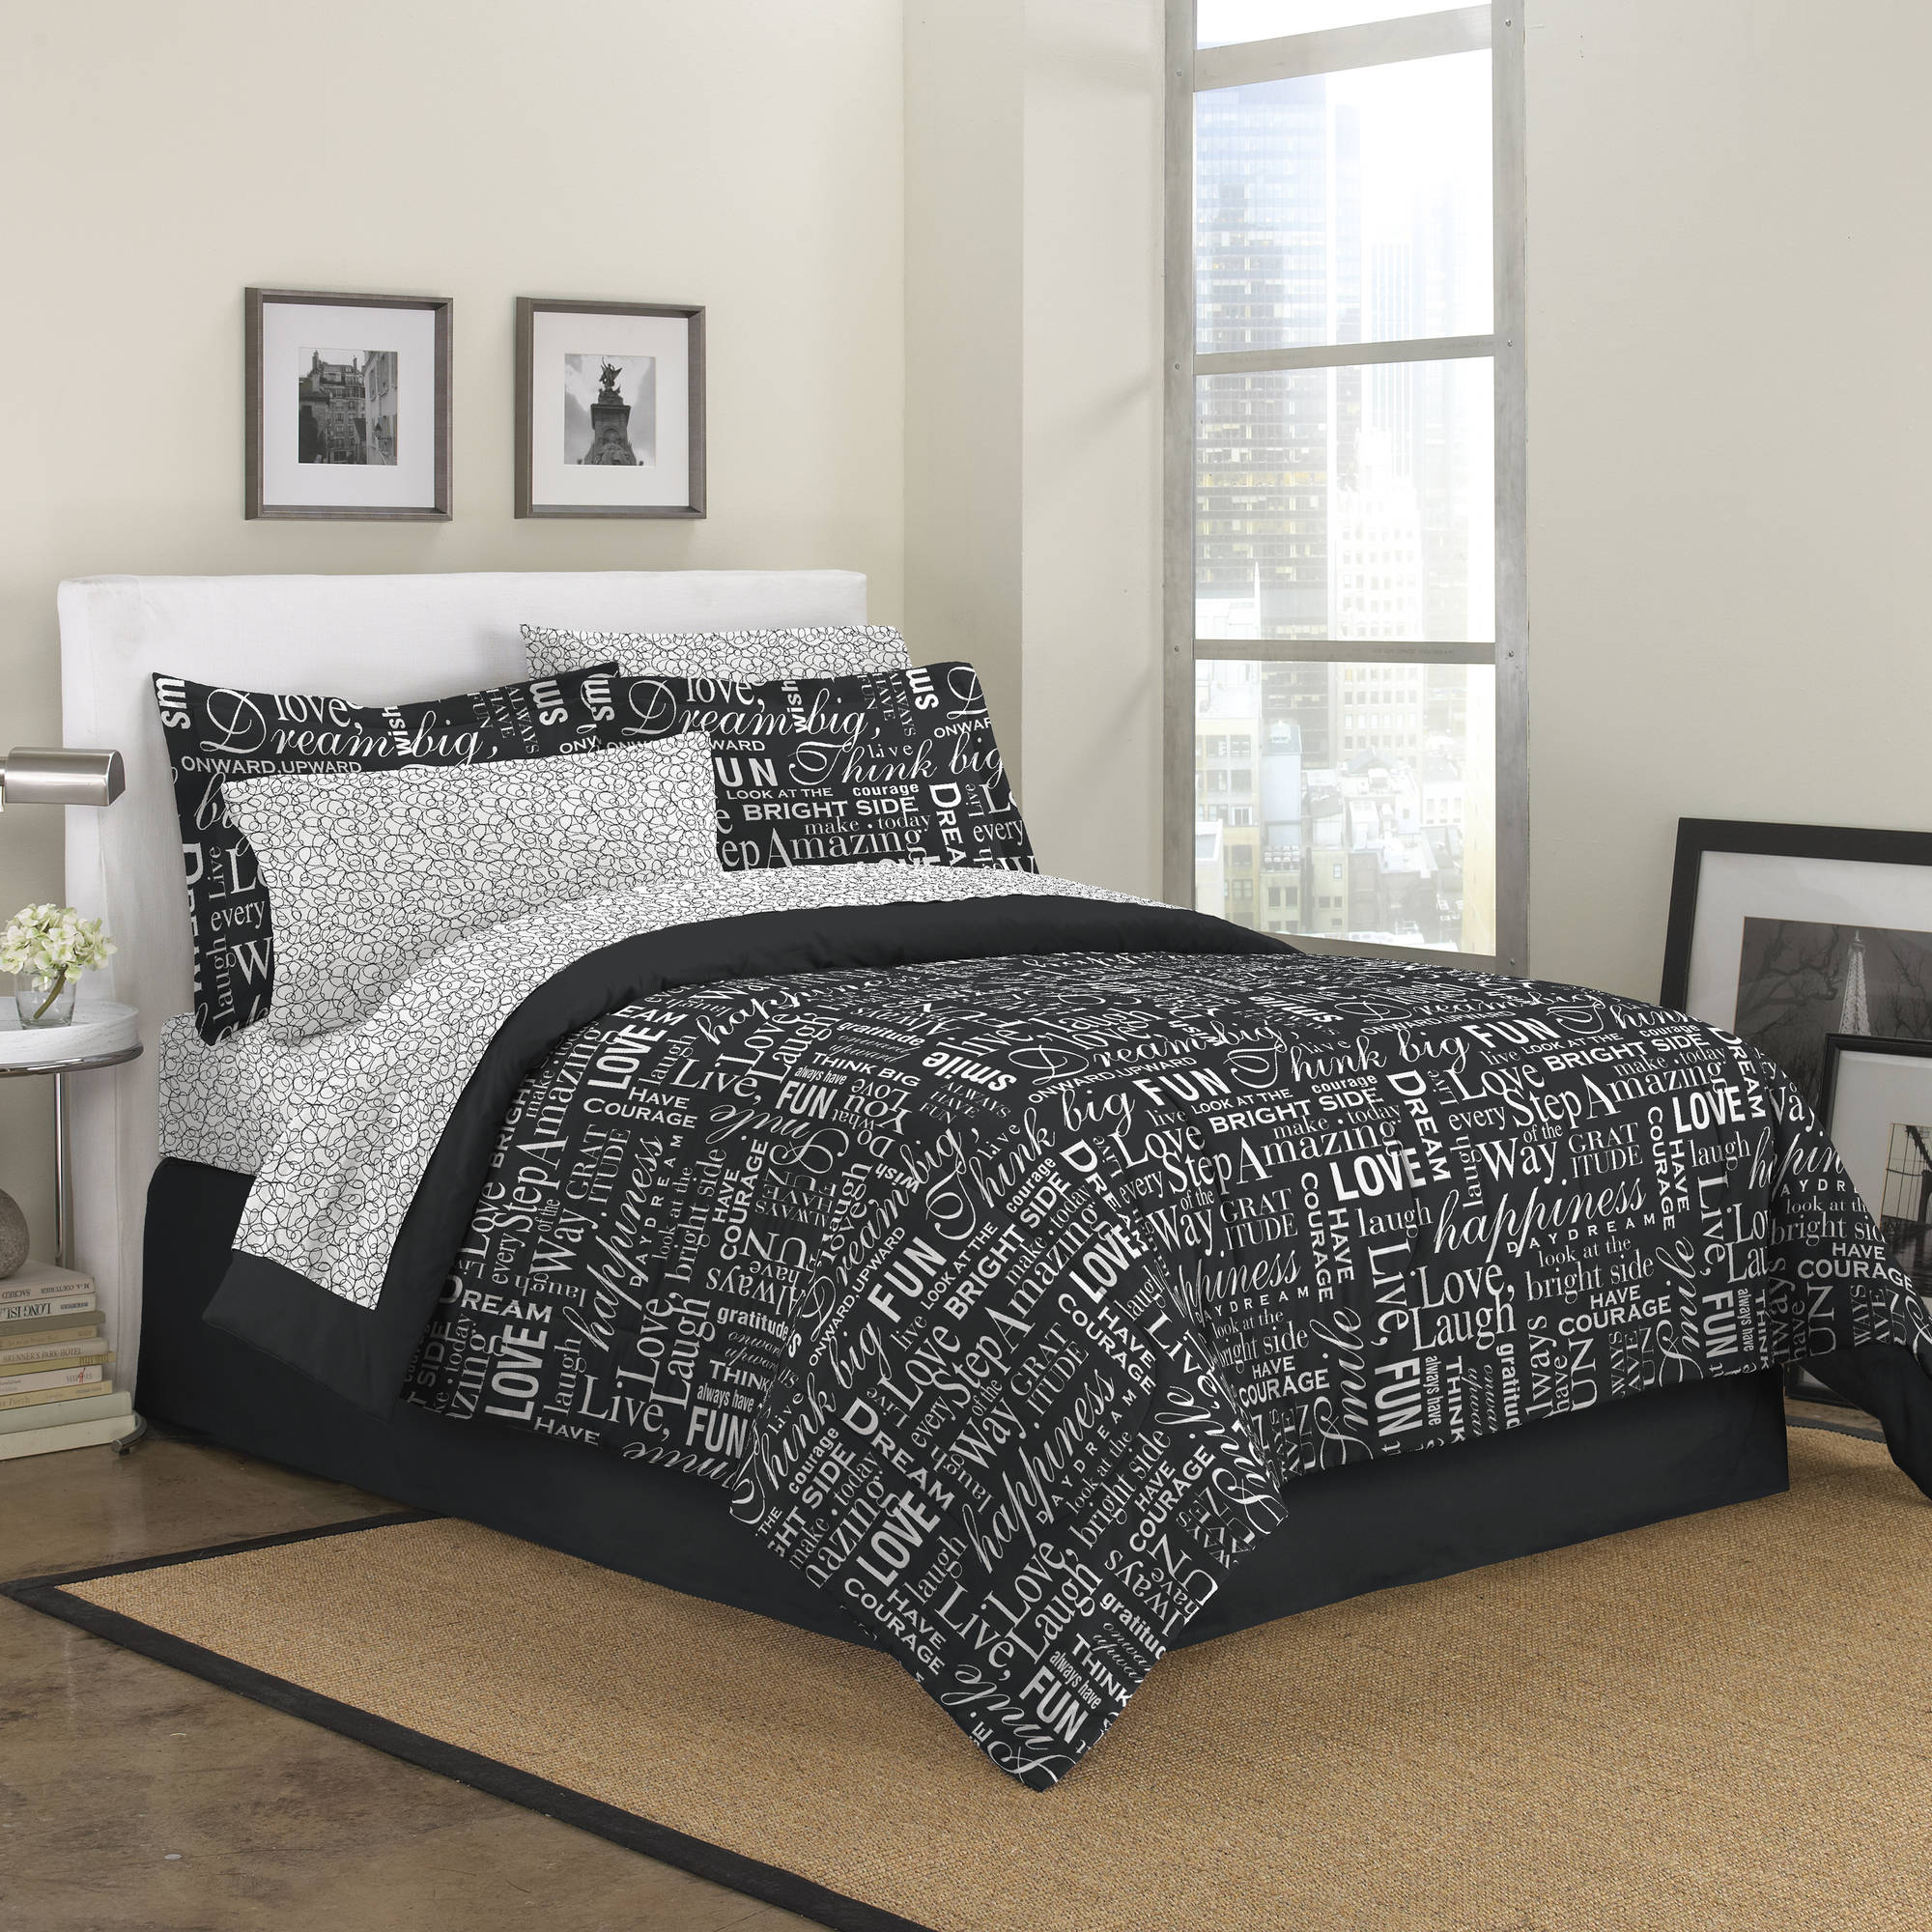 First At Home Live Love Laugh Bed in a Bag Bedding Set, Black